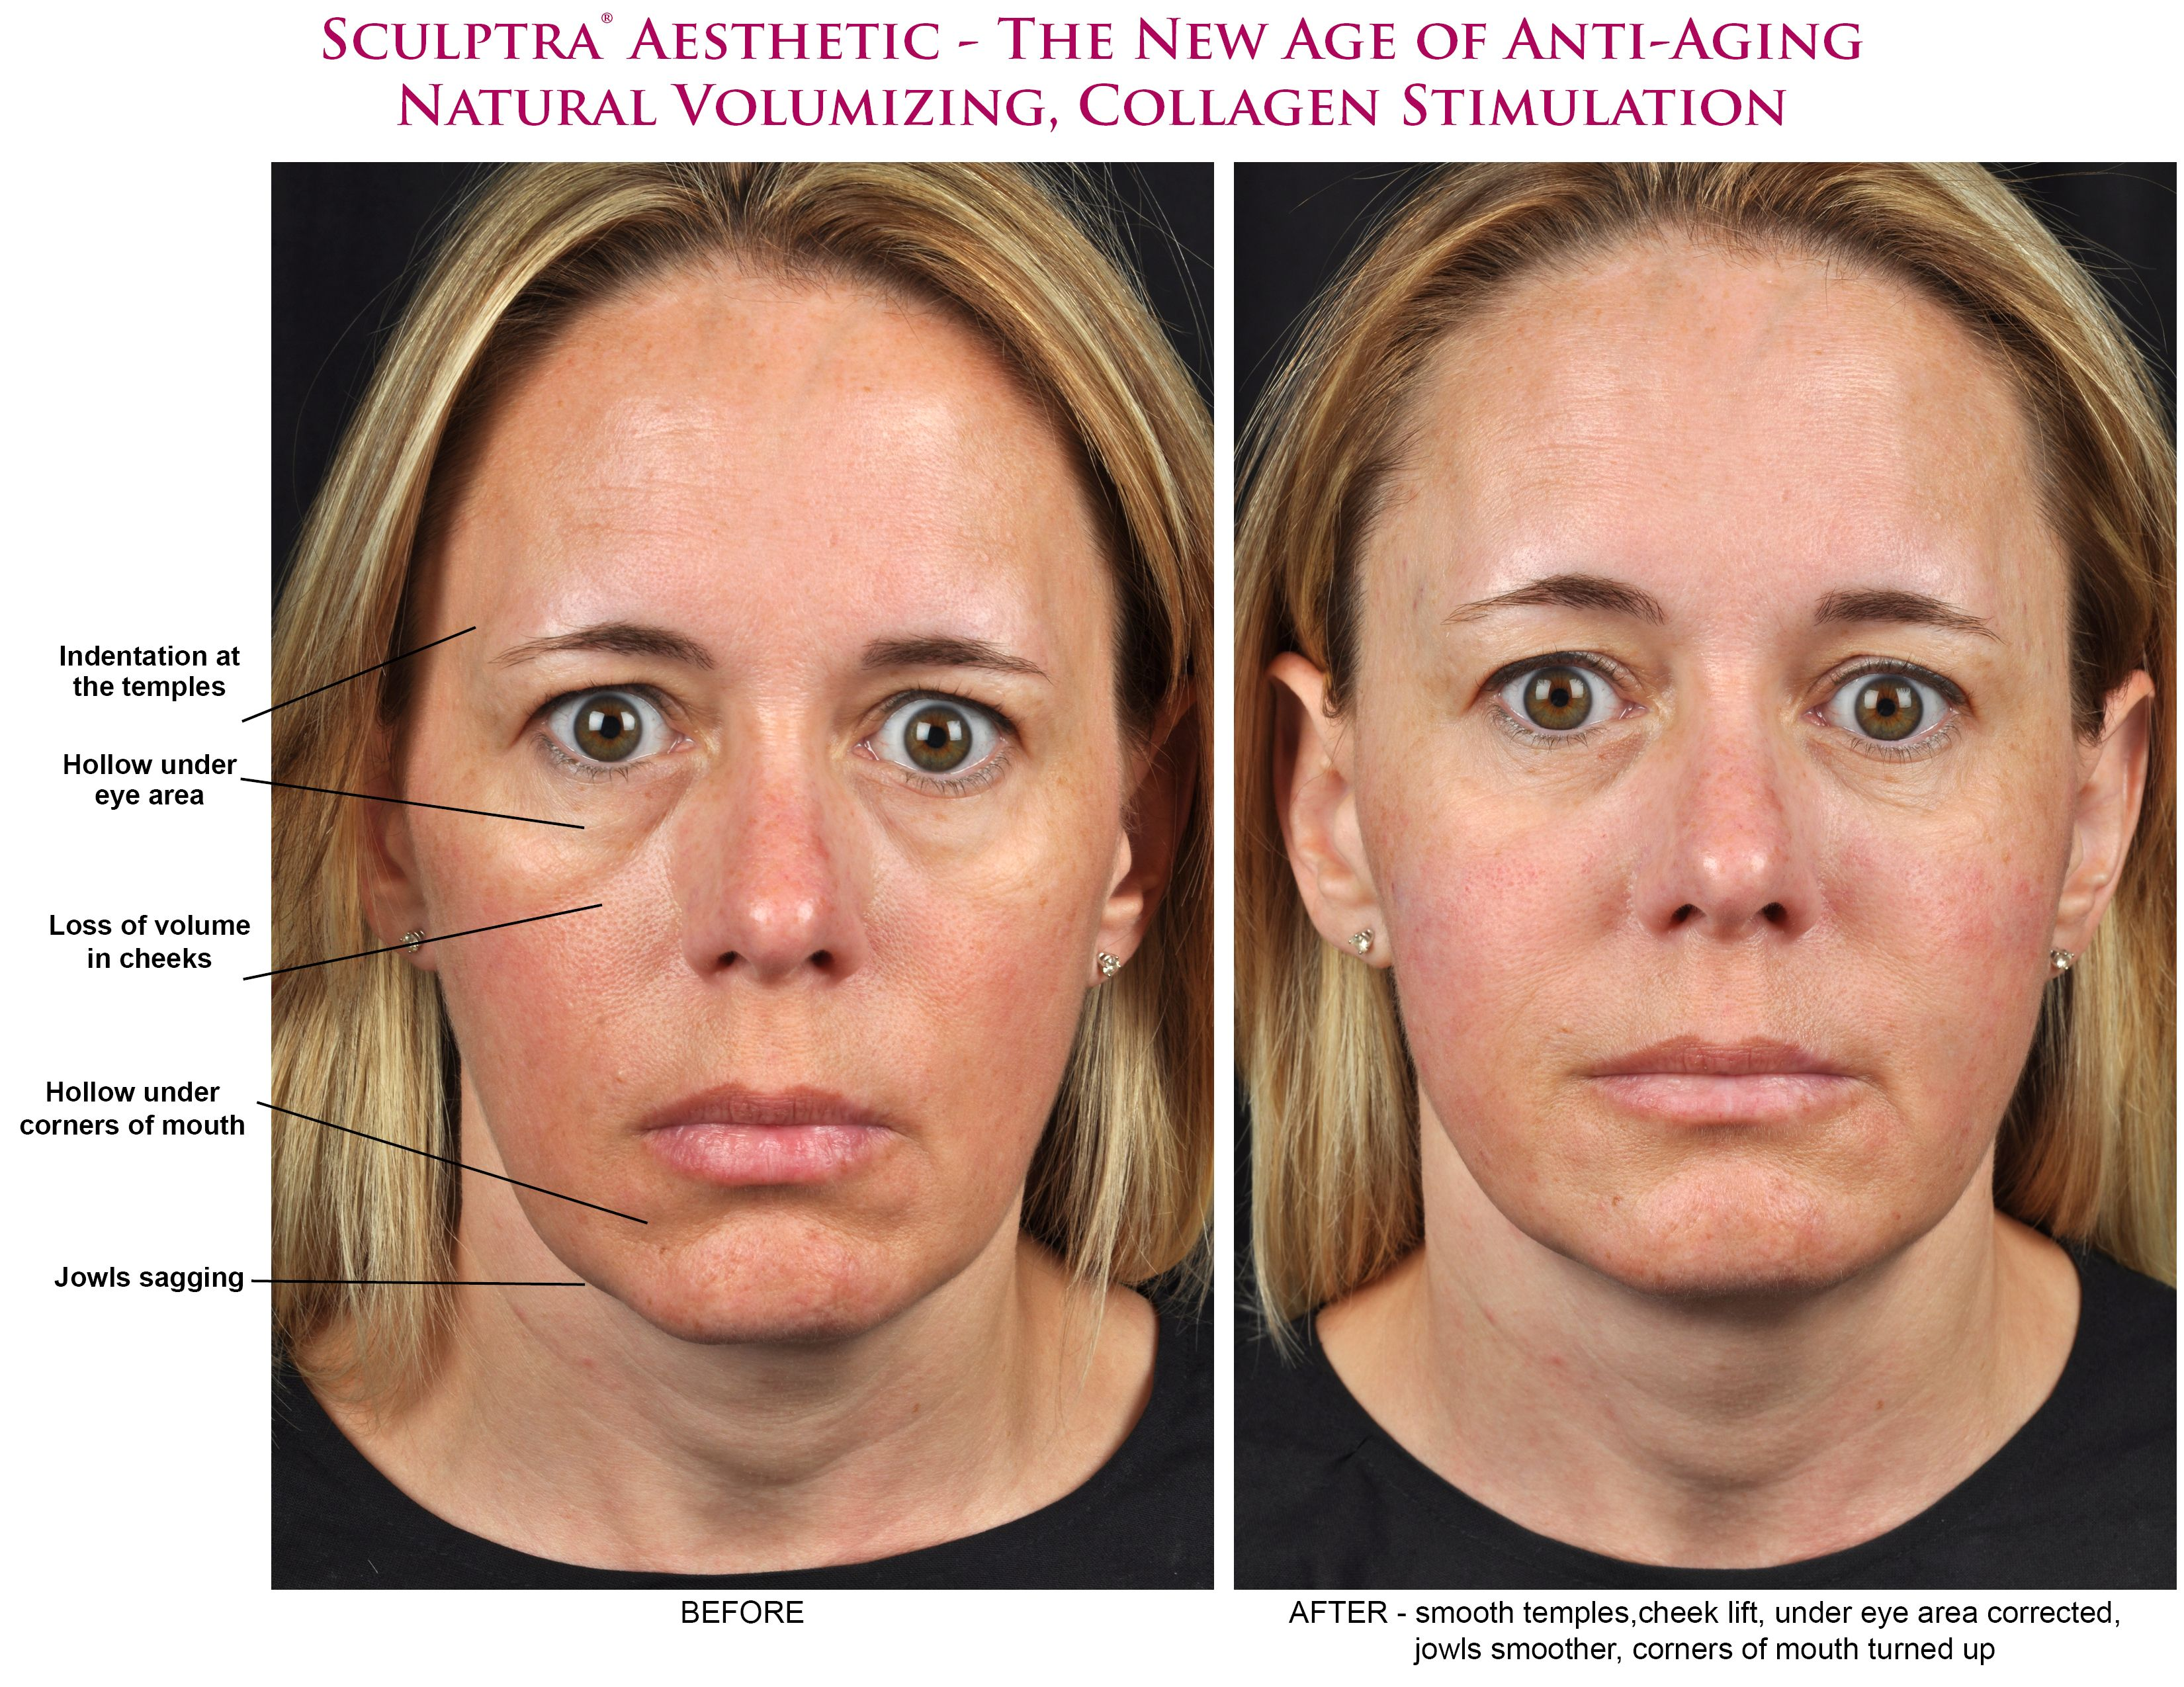 Facial stimulator before after